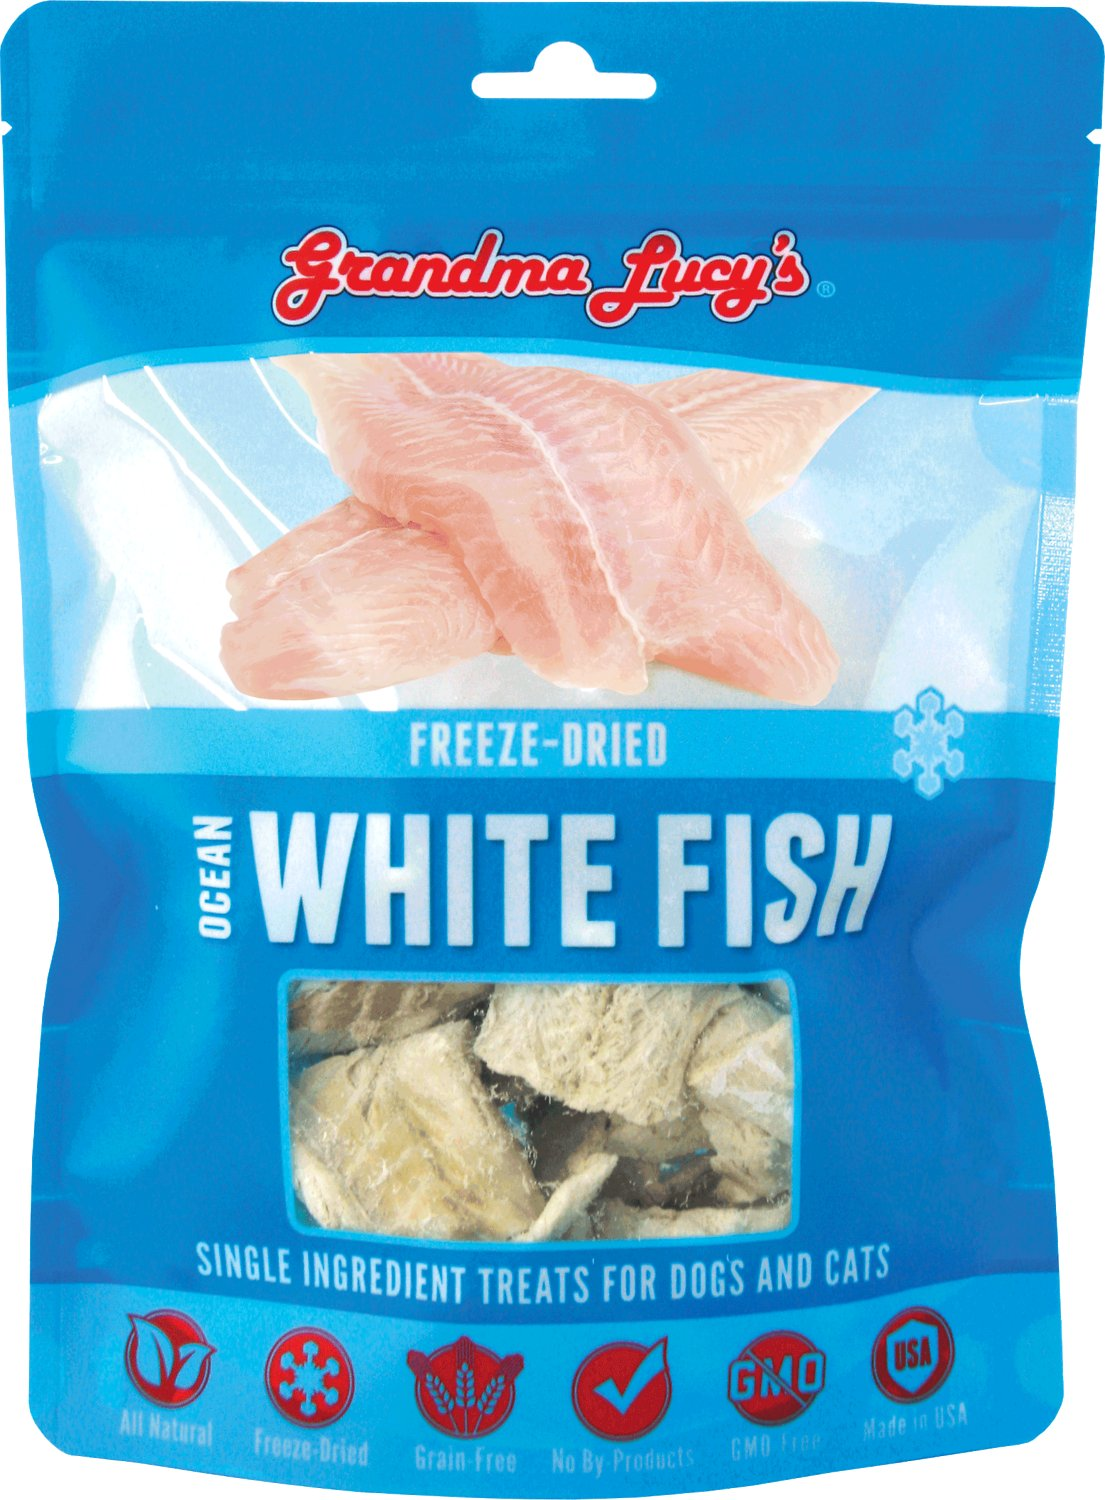 Grandma Lucy's Freeze-Dried Singles Ocean White Fish Dog & Cat Treats, 2-oz bag